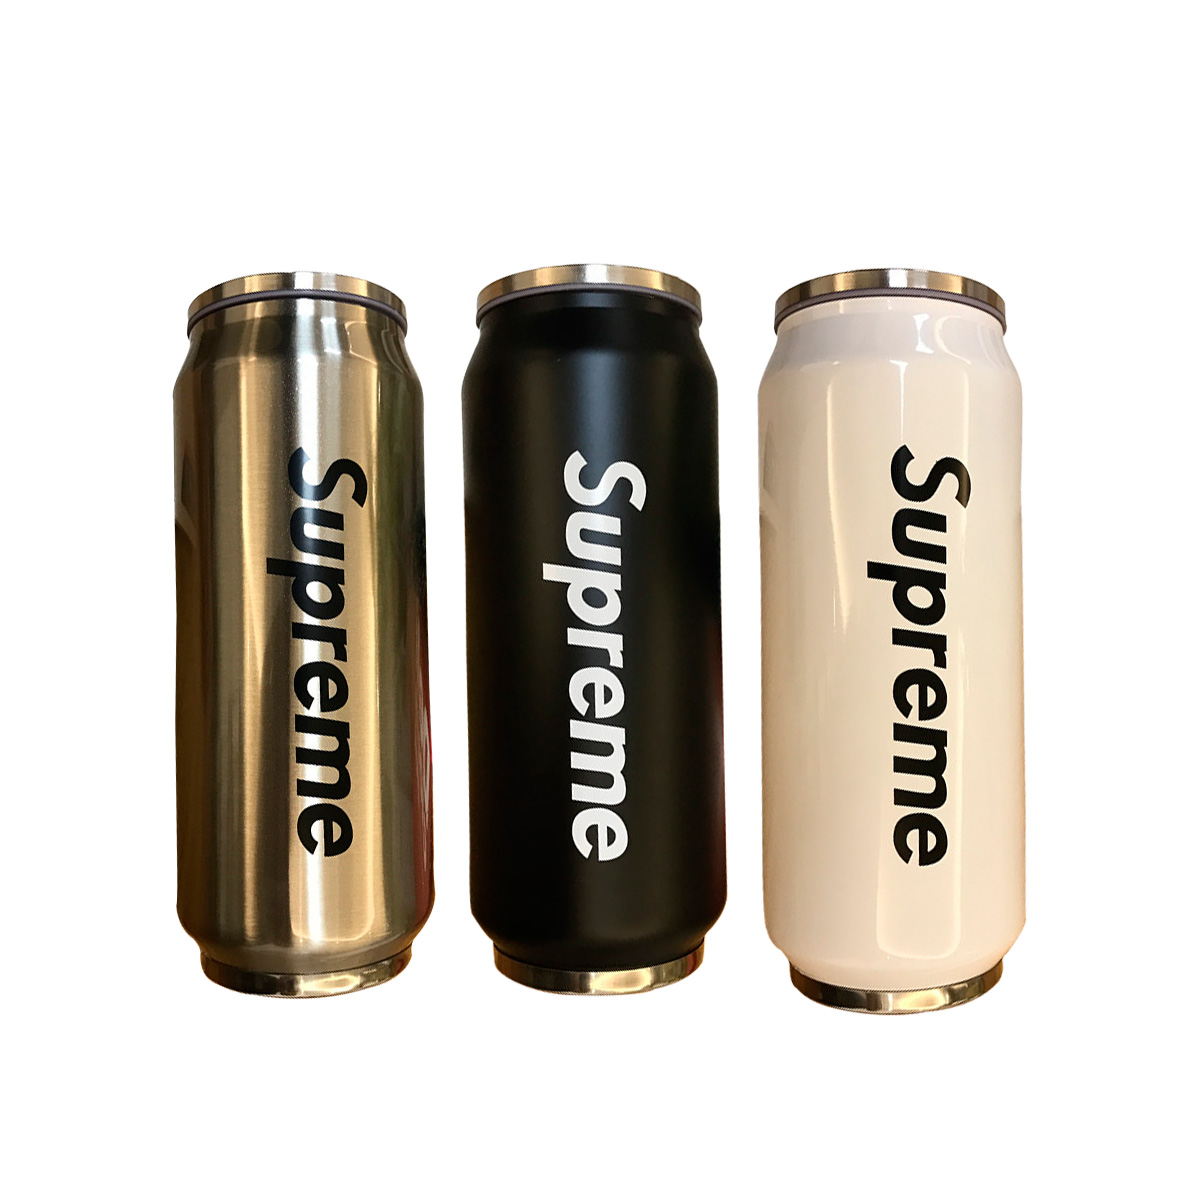 Supreme Cans Suction Tube 保温カップ 3色